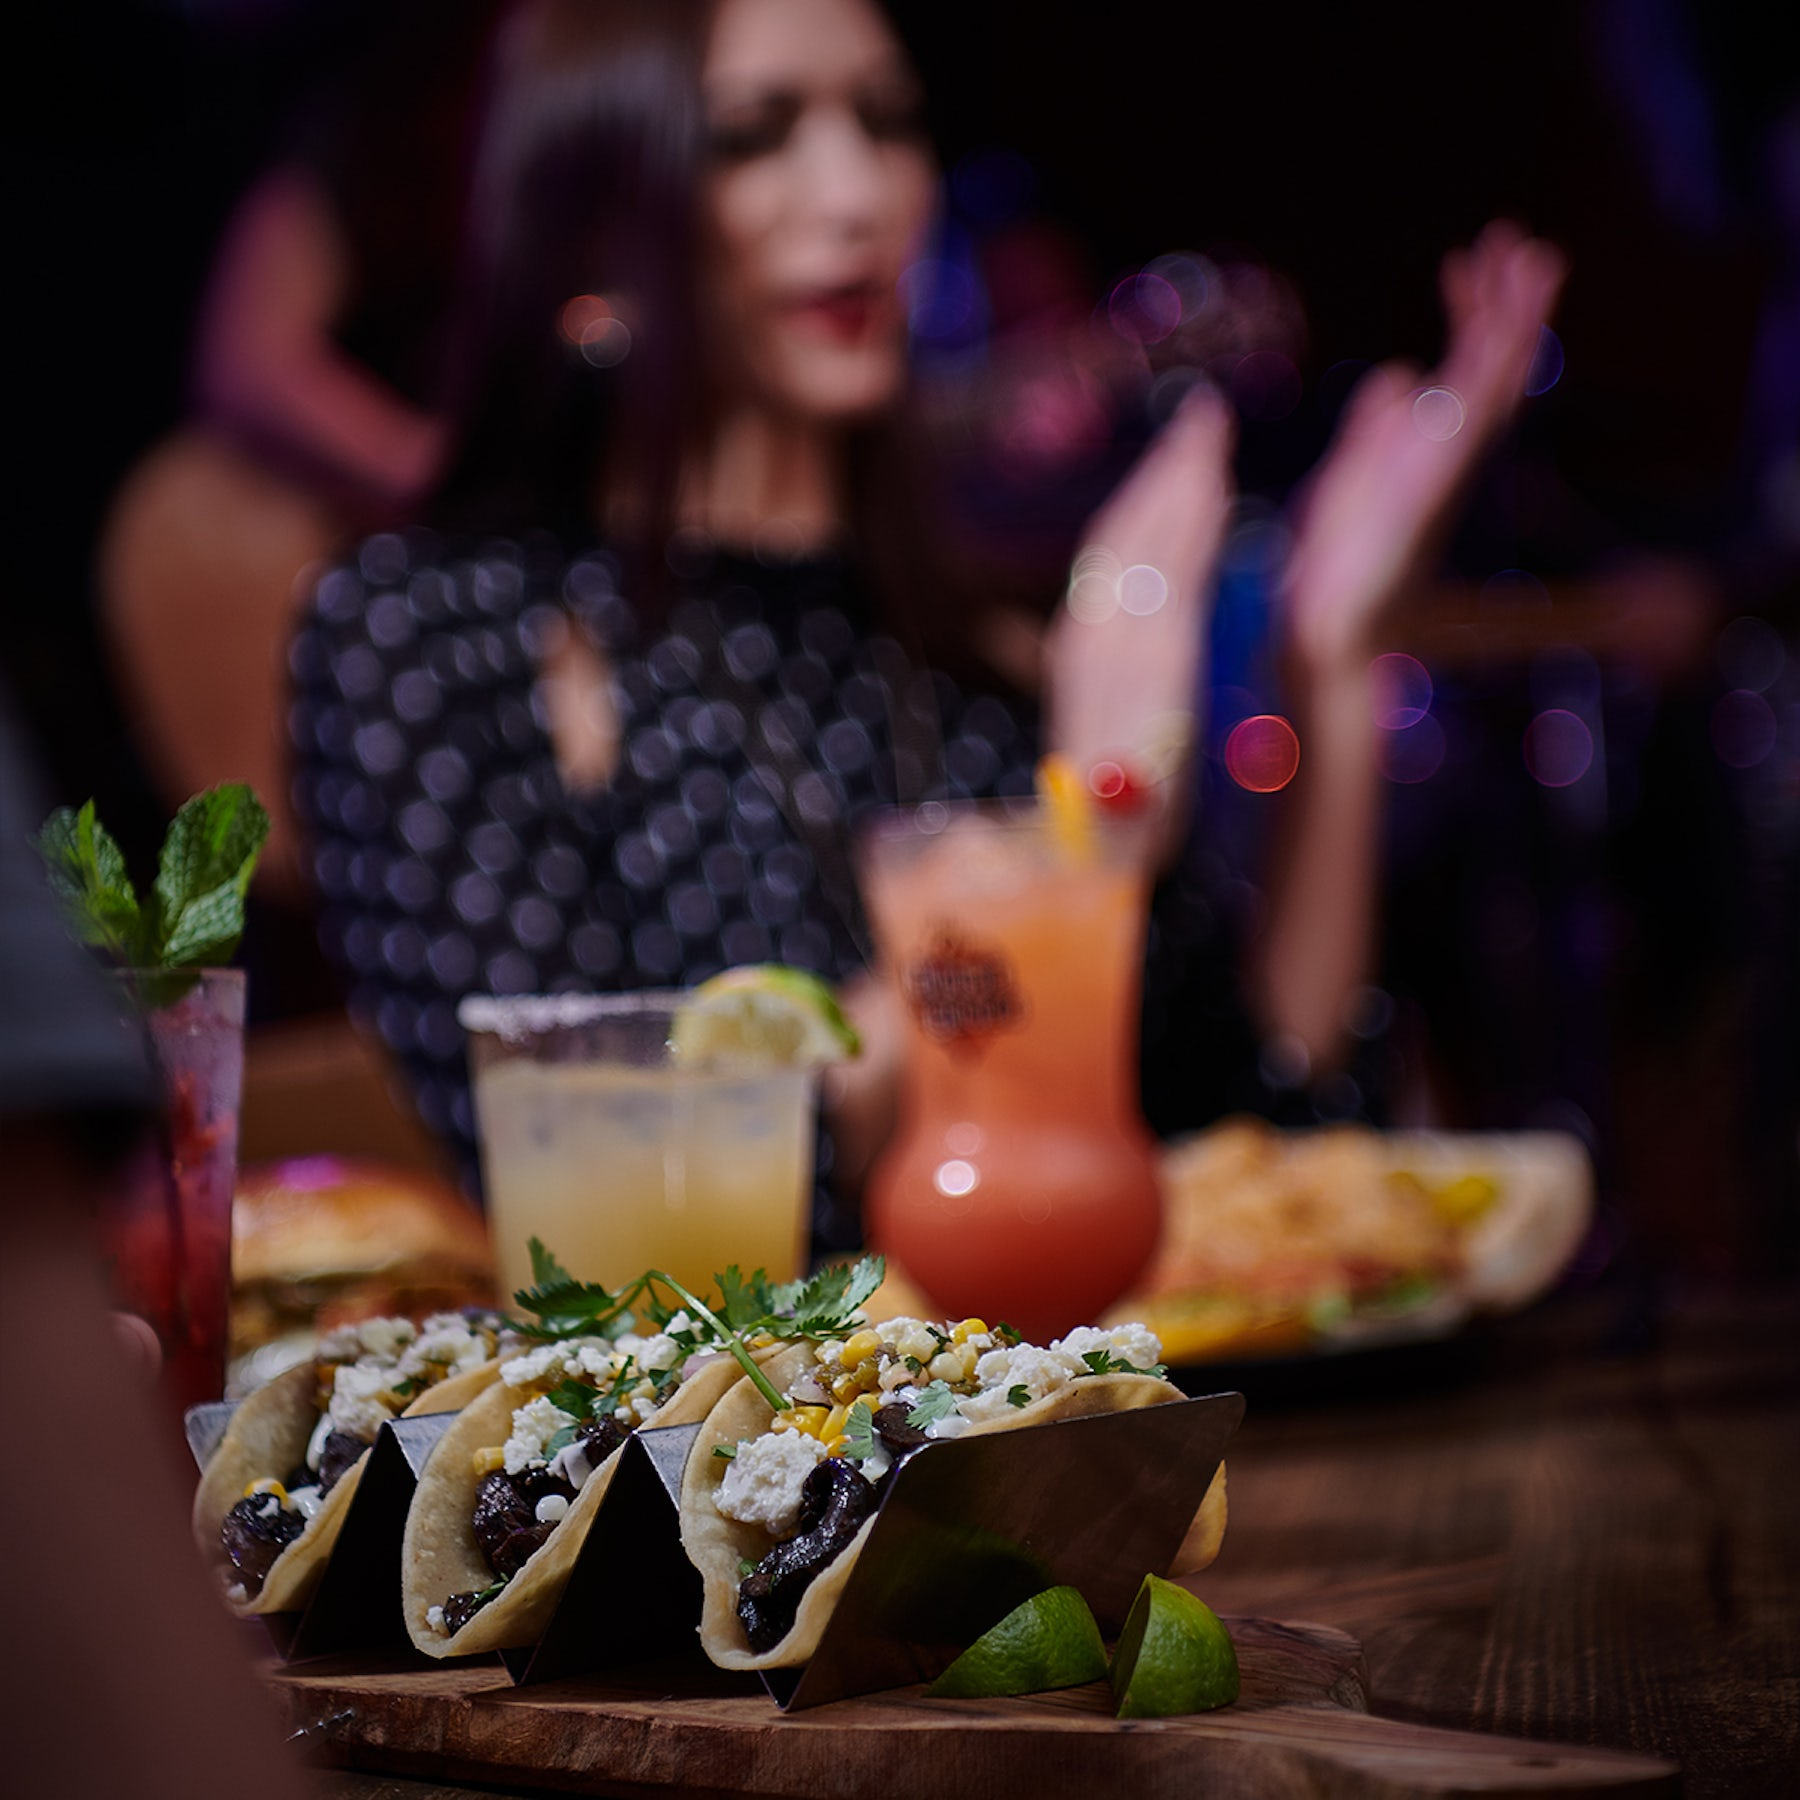 House of Blues Restaurant & Bar in Beyond Dallas